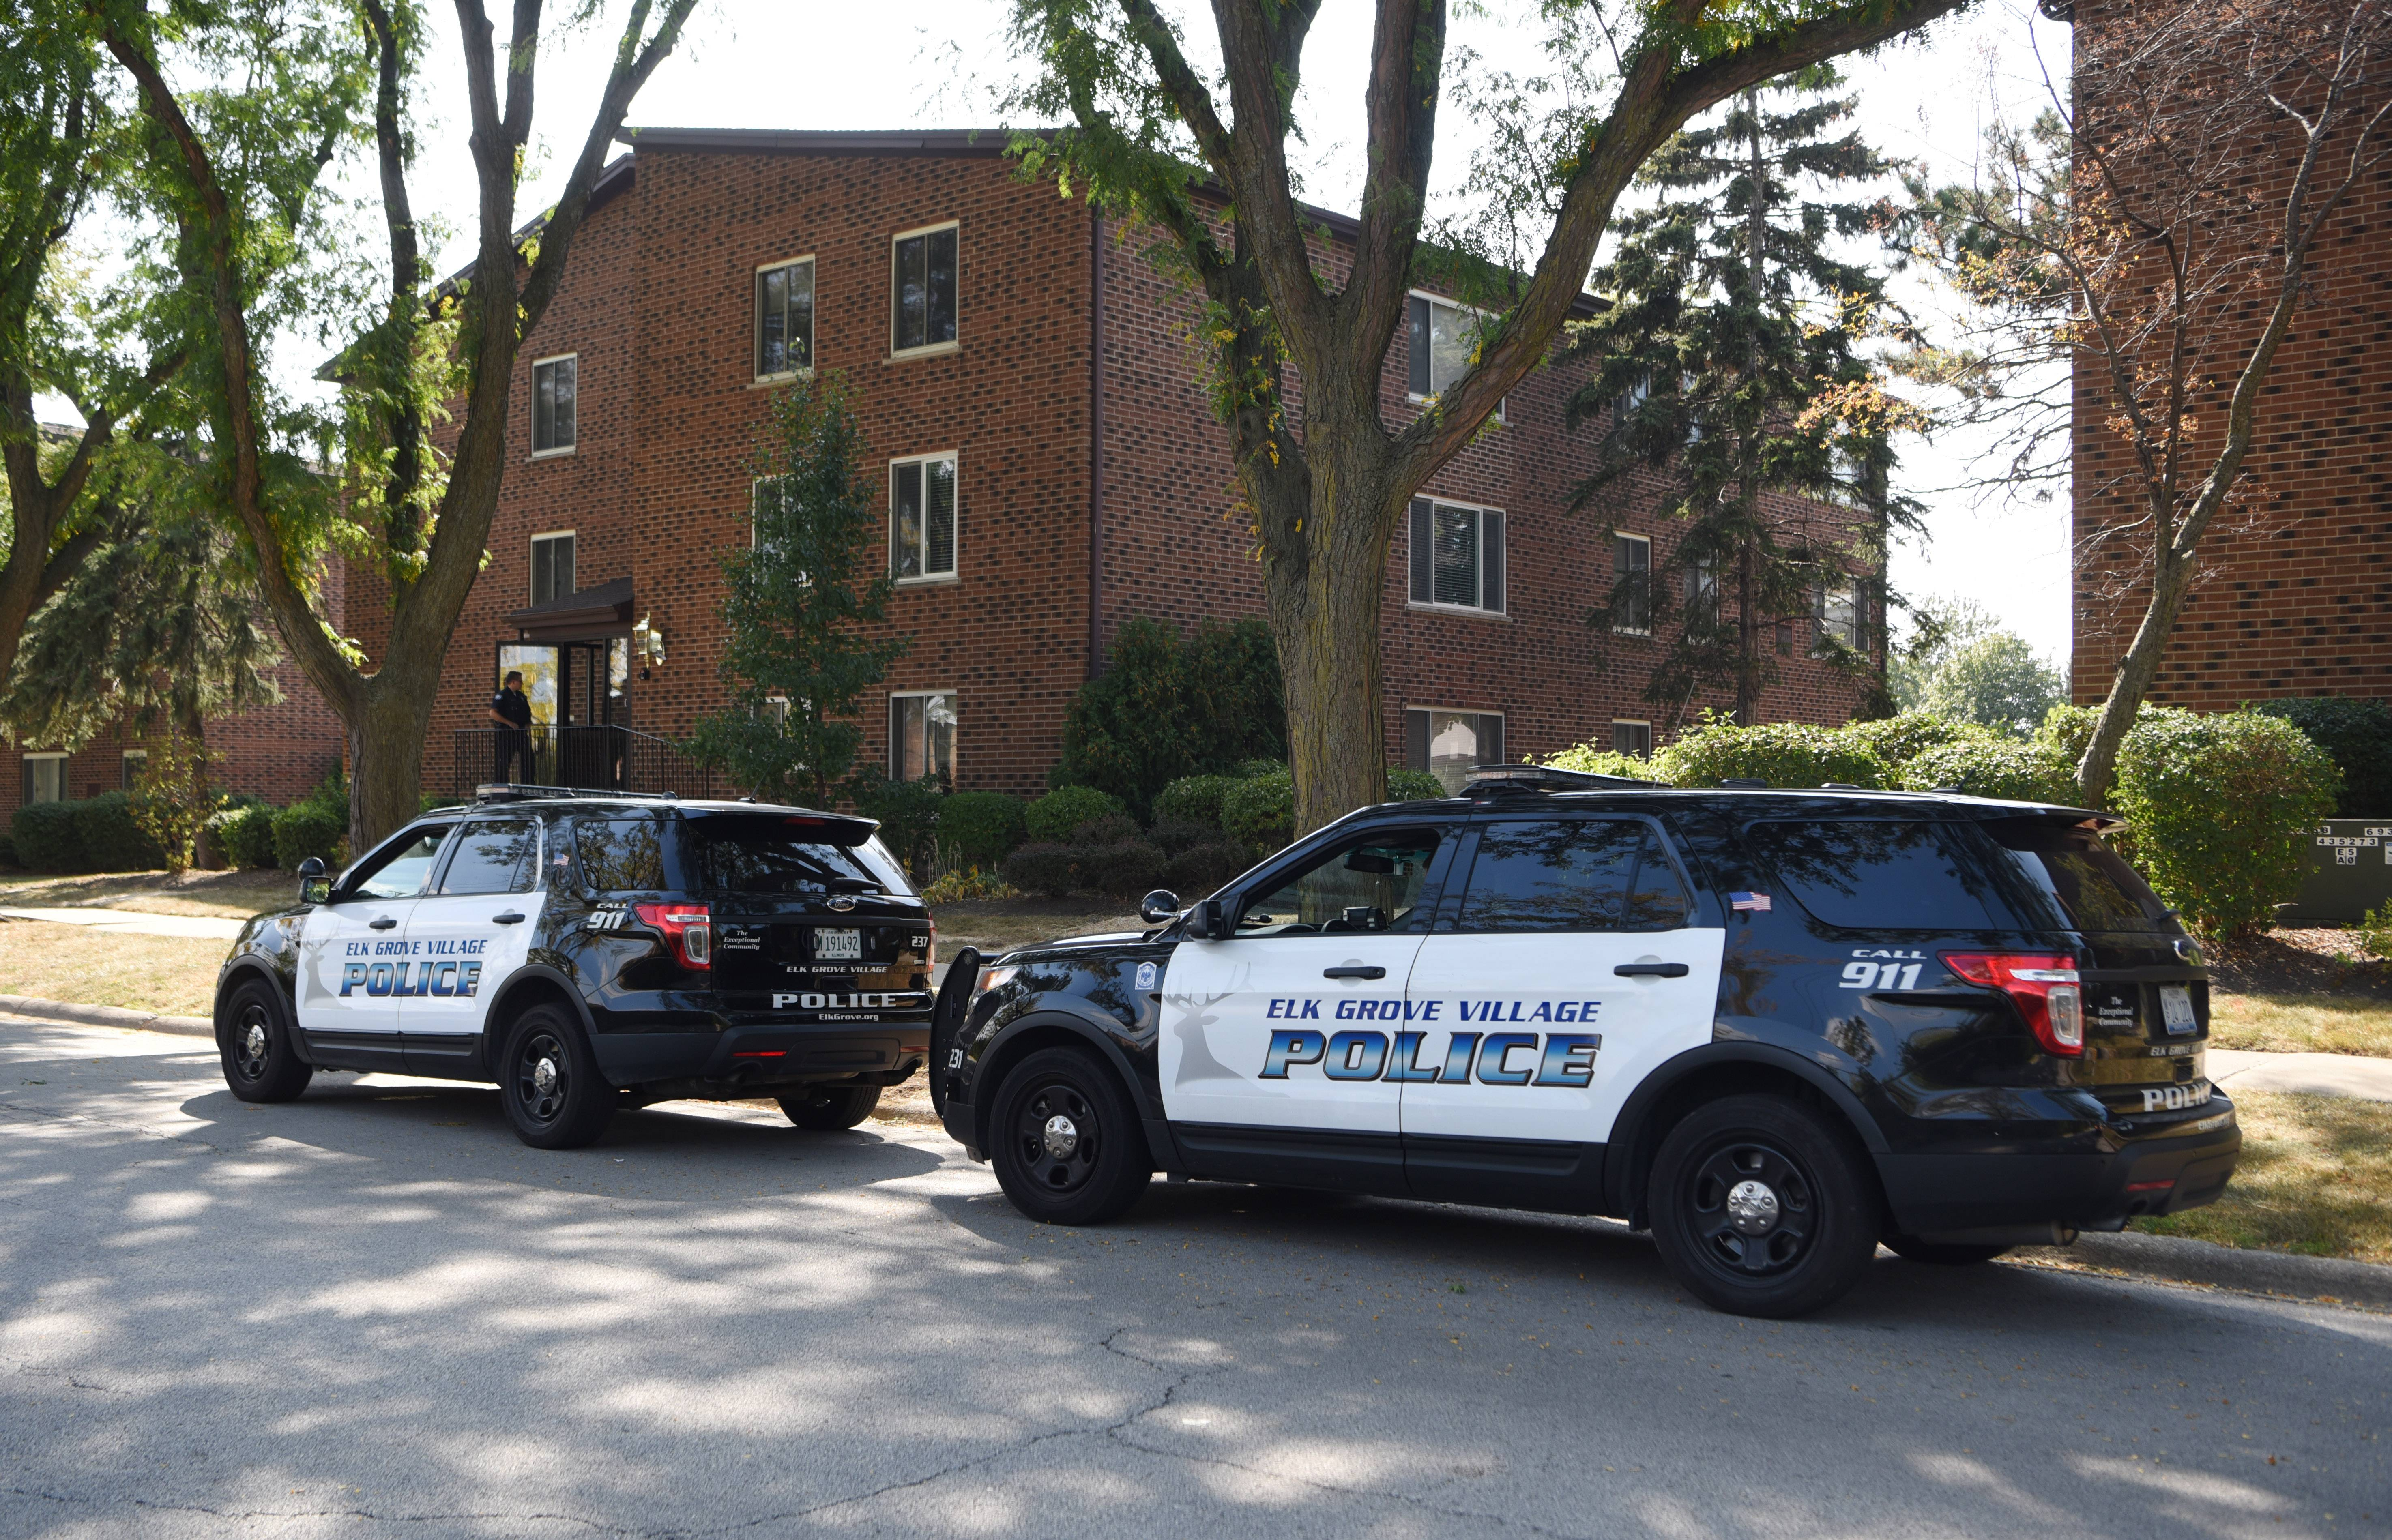 The mother of a 3-year-old boy who lived in the 900 block of Perrie Drive in Elk Grove Village faces first-degree murder charges in her son's death.